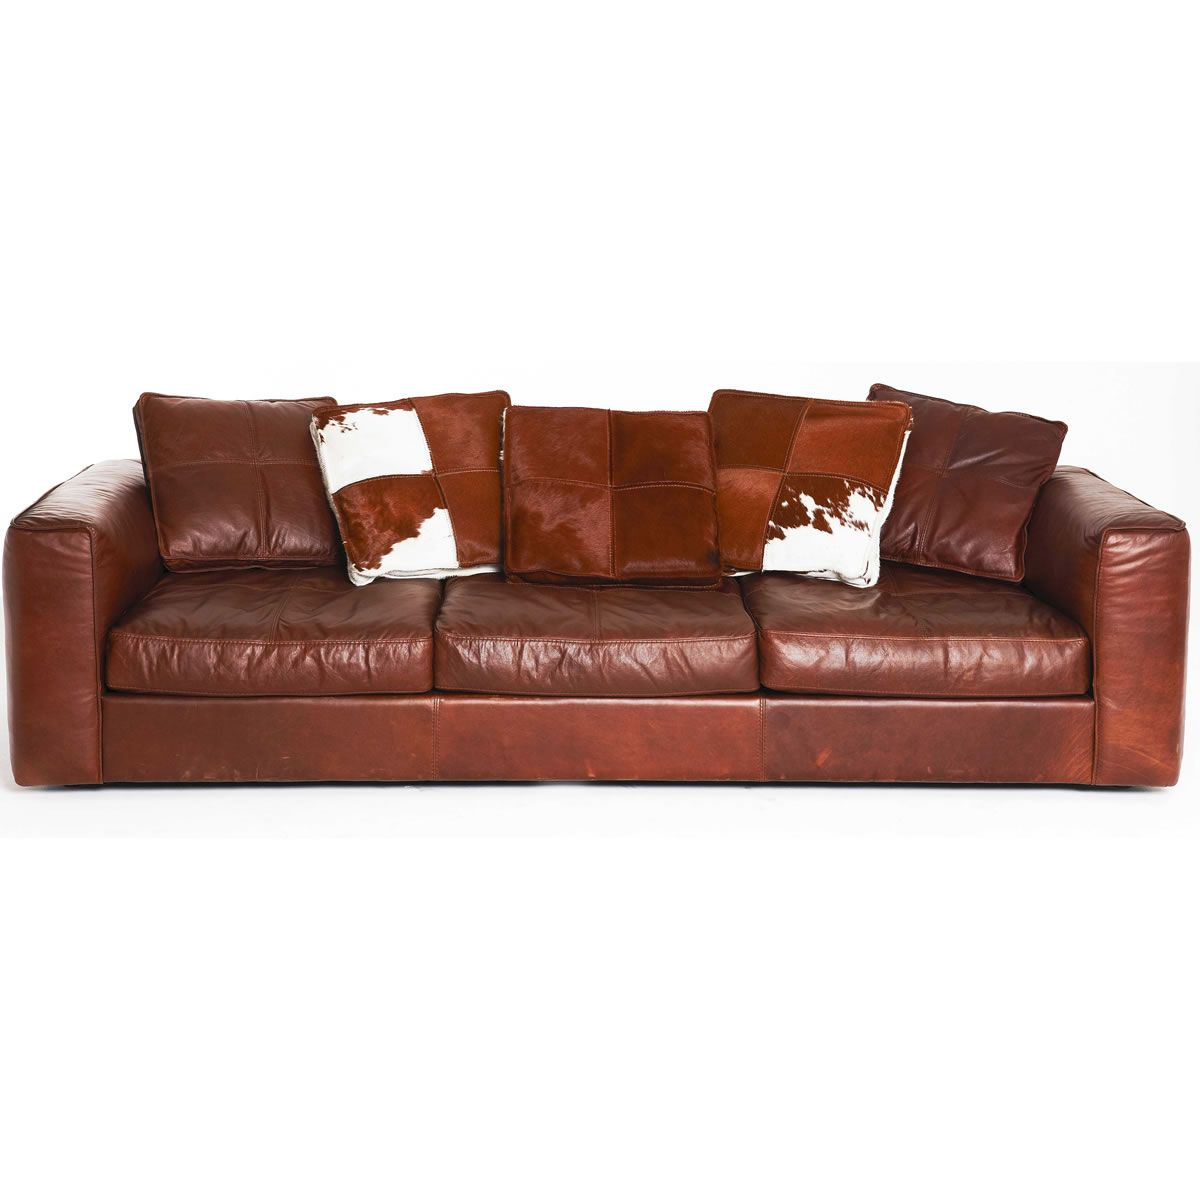 Couches Calgary Comfy Leather Sofa Free Comfy Leather Sofa Stuff Calgary